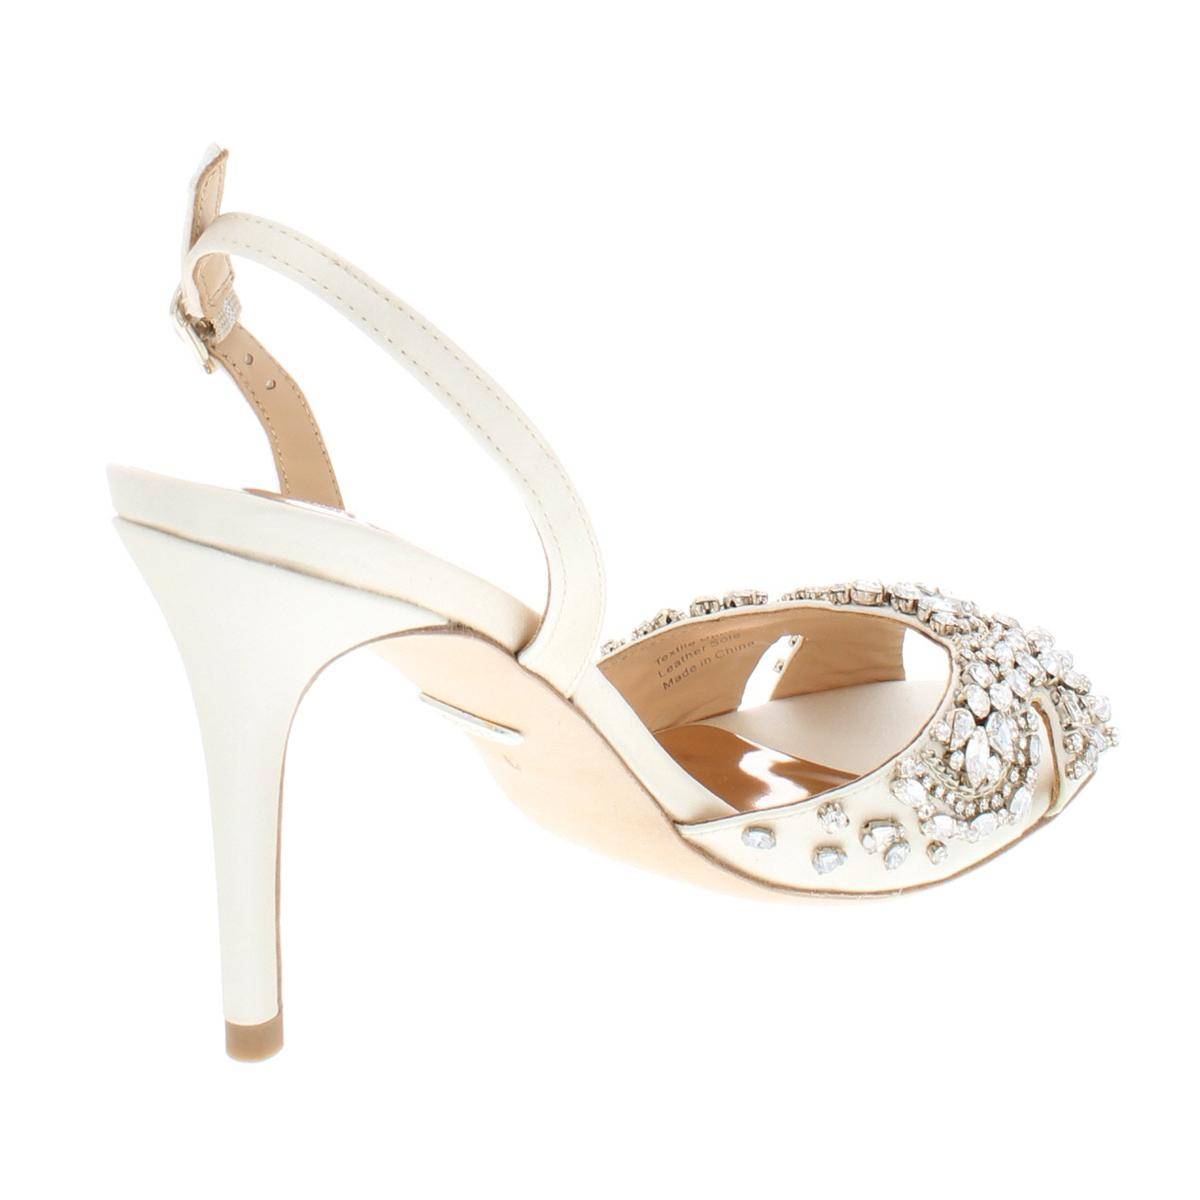 4ac528c1ff1 Badgley Mischka Womens Paula Satin Embellished Dress Sandals Heels ...